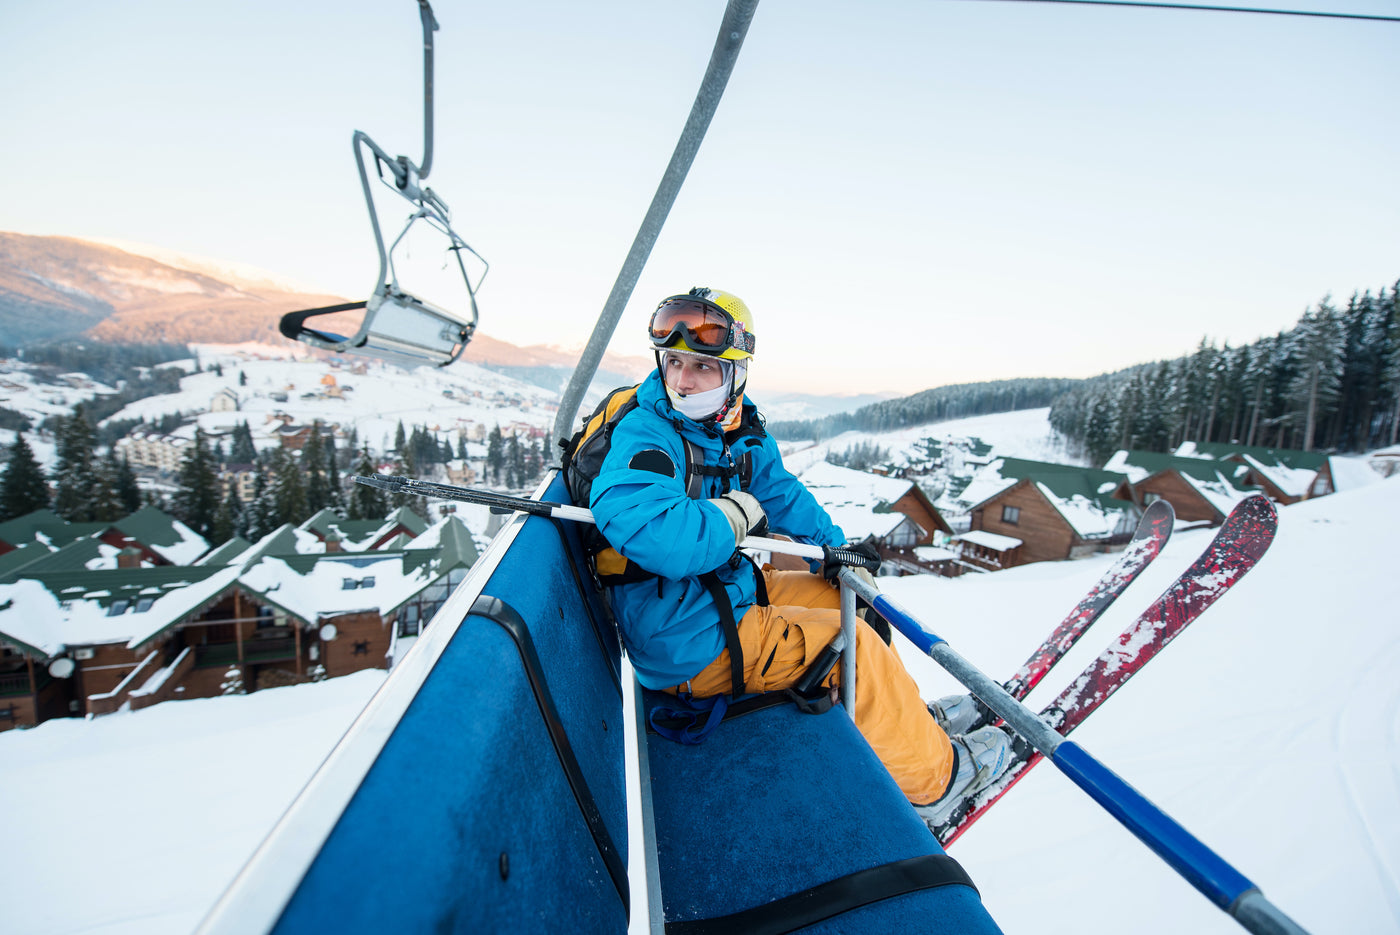 Skier posing on a ski lift